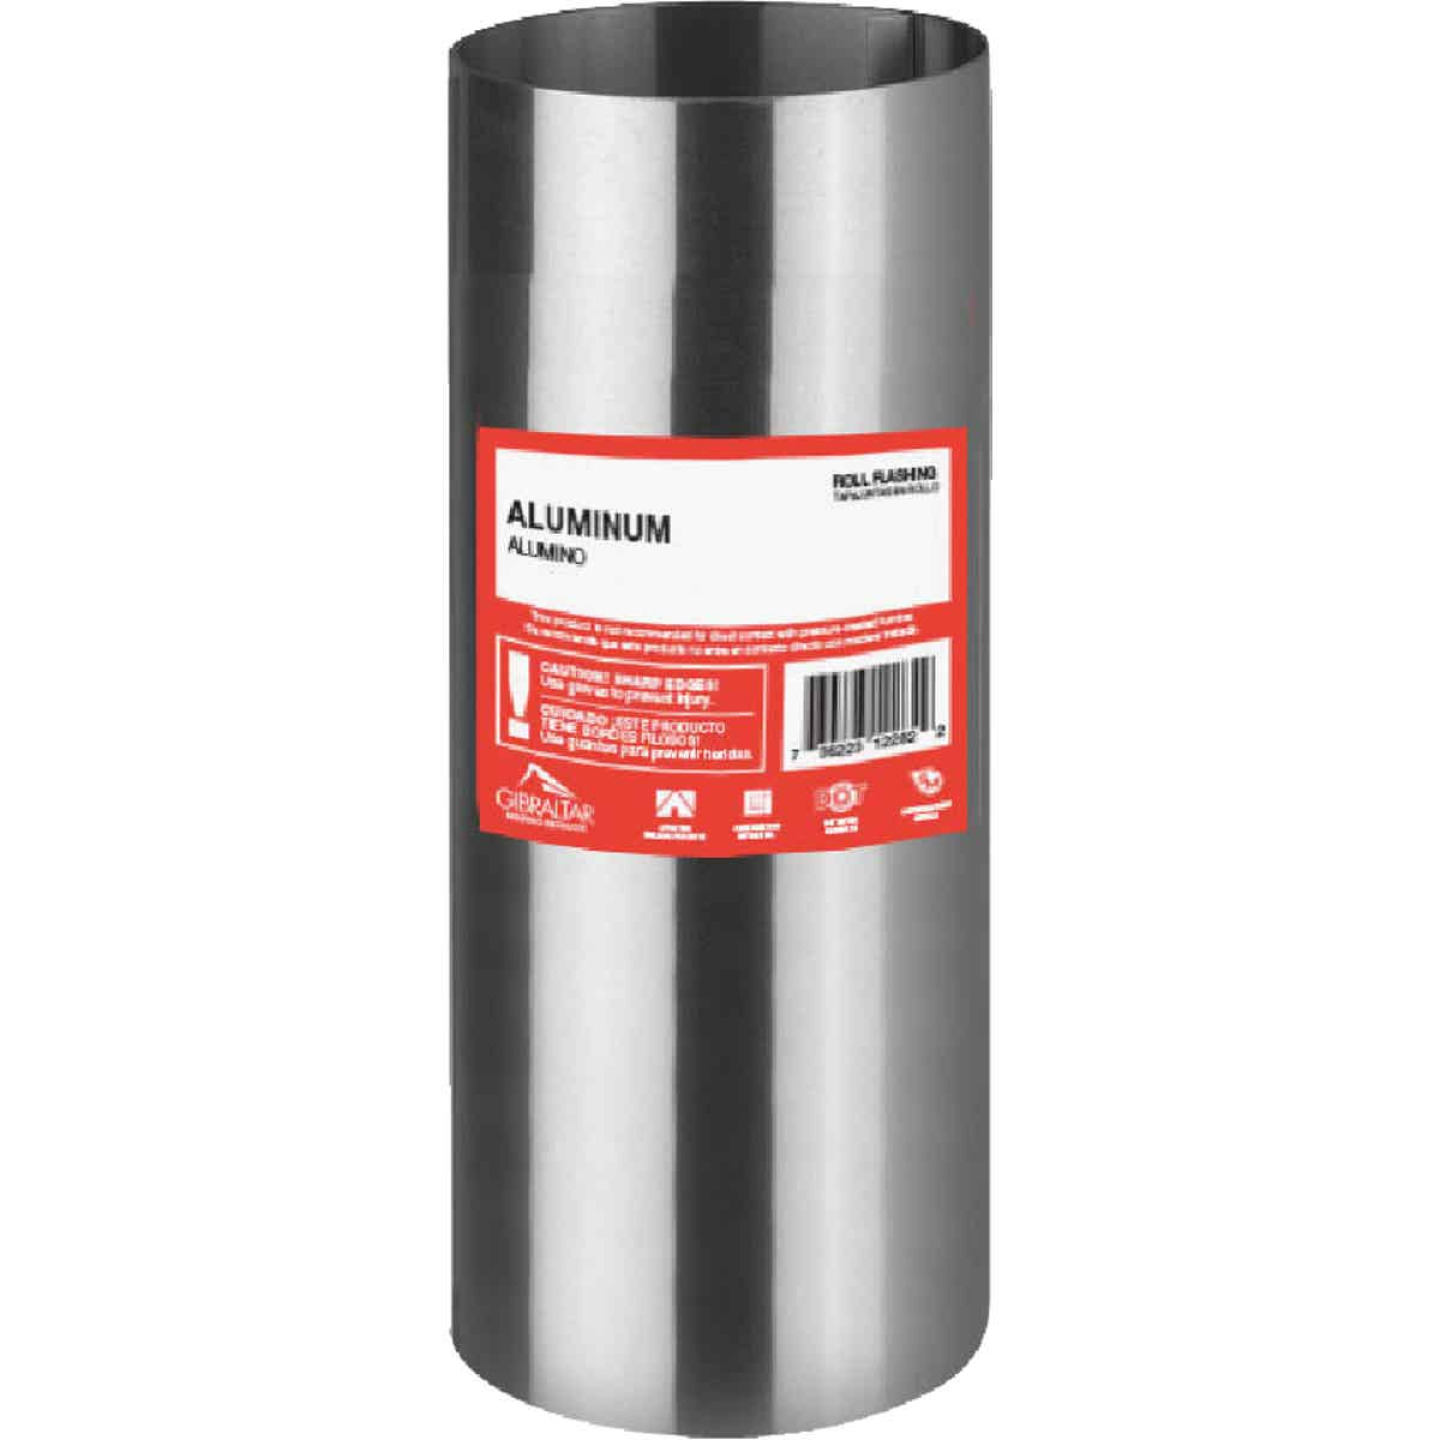 NorWesco 7 In. x 10 Ft. Mill Aluminum Roll Valley Flashing Image 1